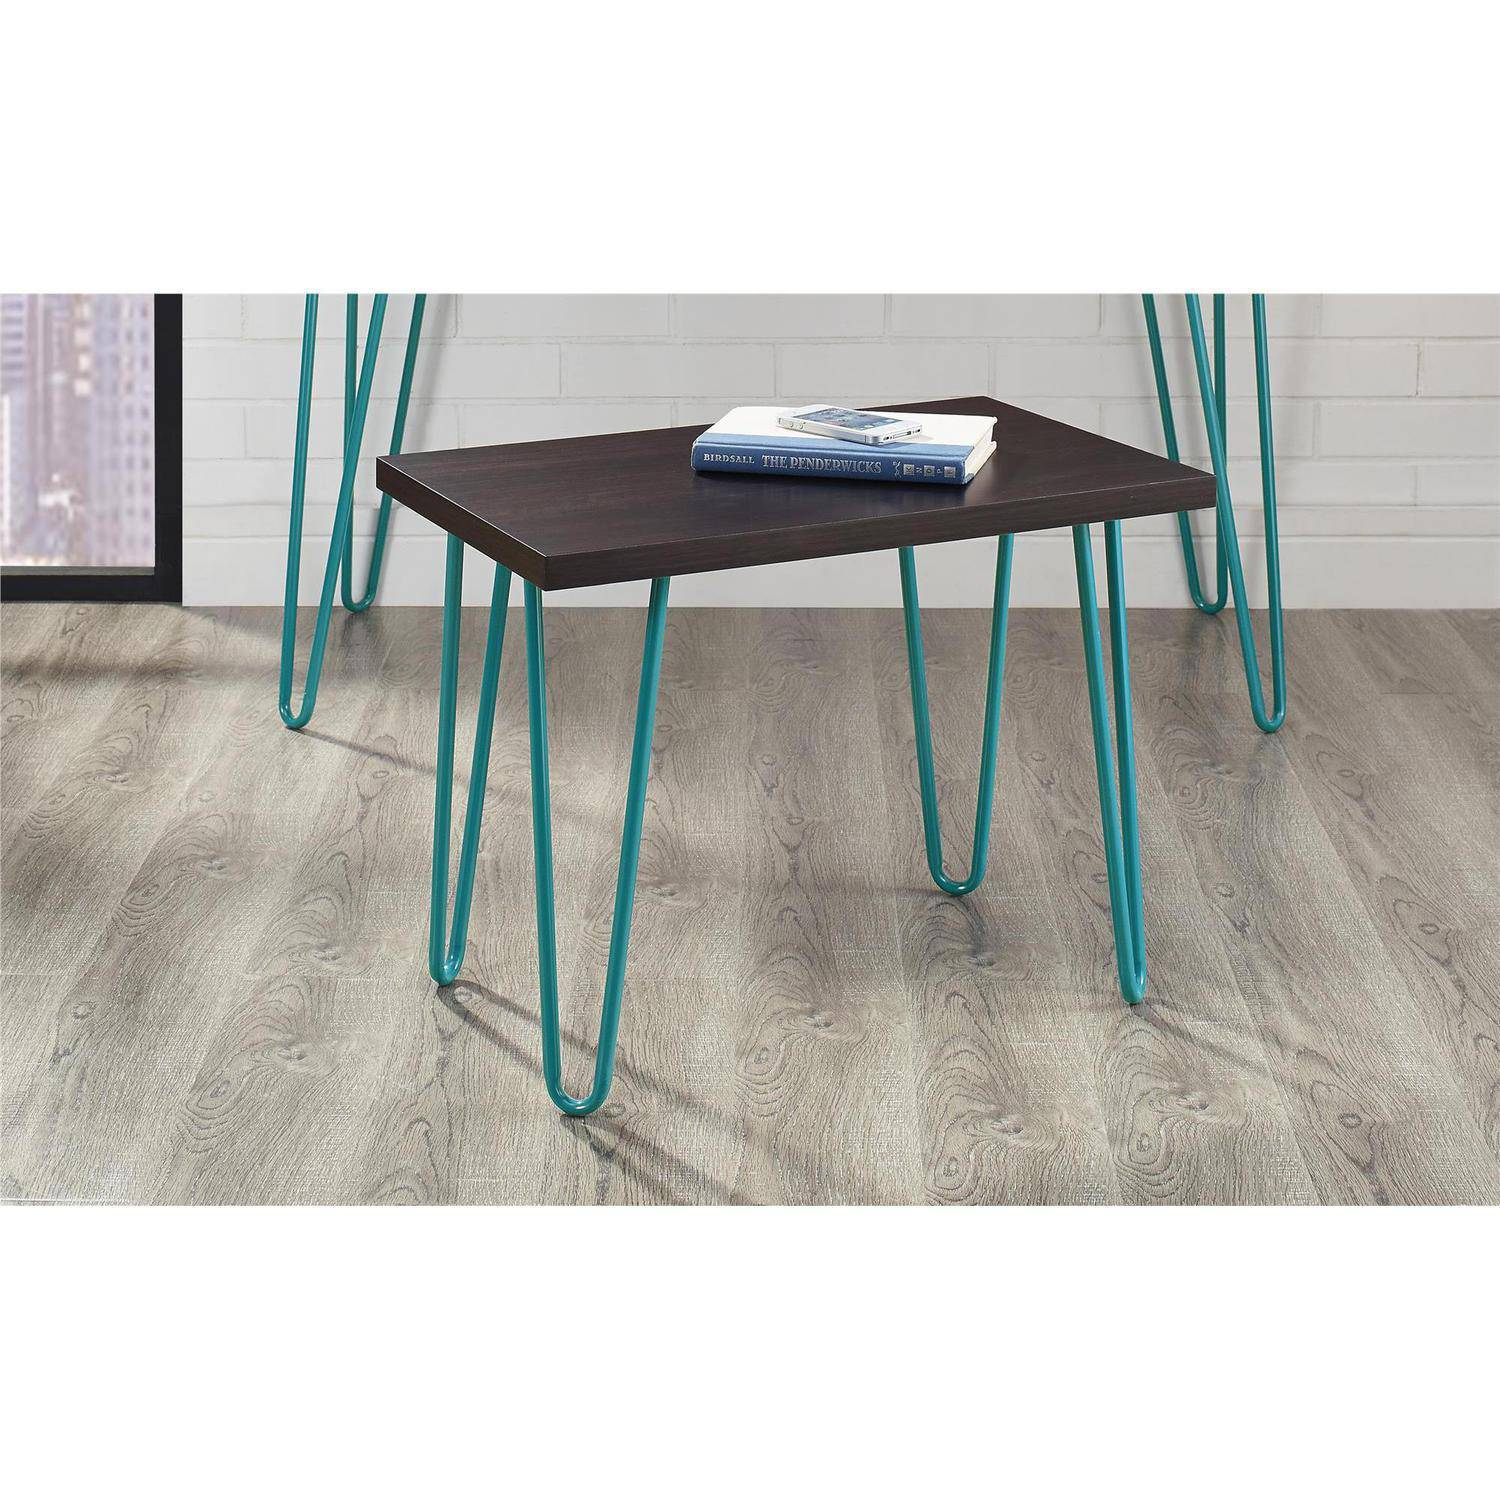 Altra Owen Retro Stool 17 Quot Espresso Finish With Teal